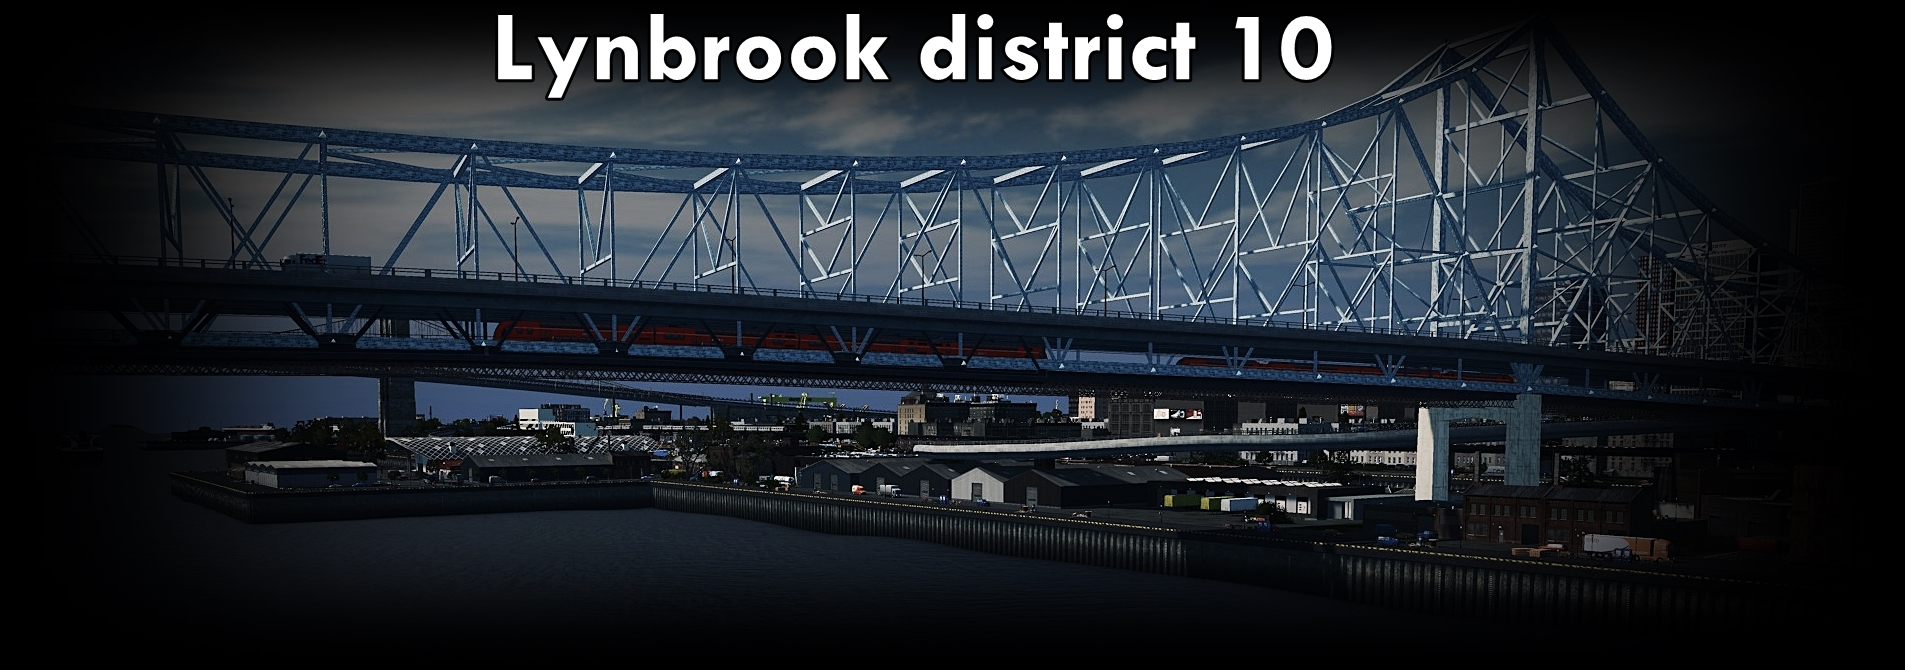 Lynbrook&Deep water, Maj district 10 p9. - Page 9 180208010138314903